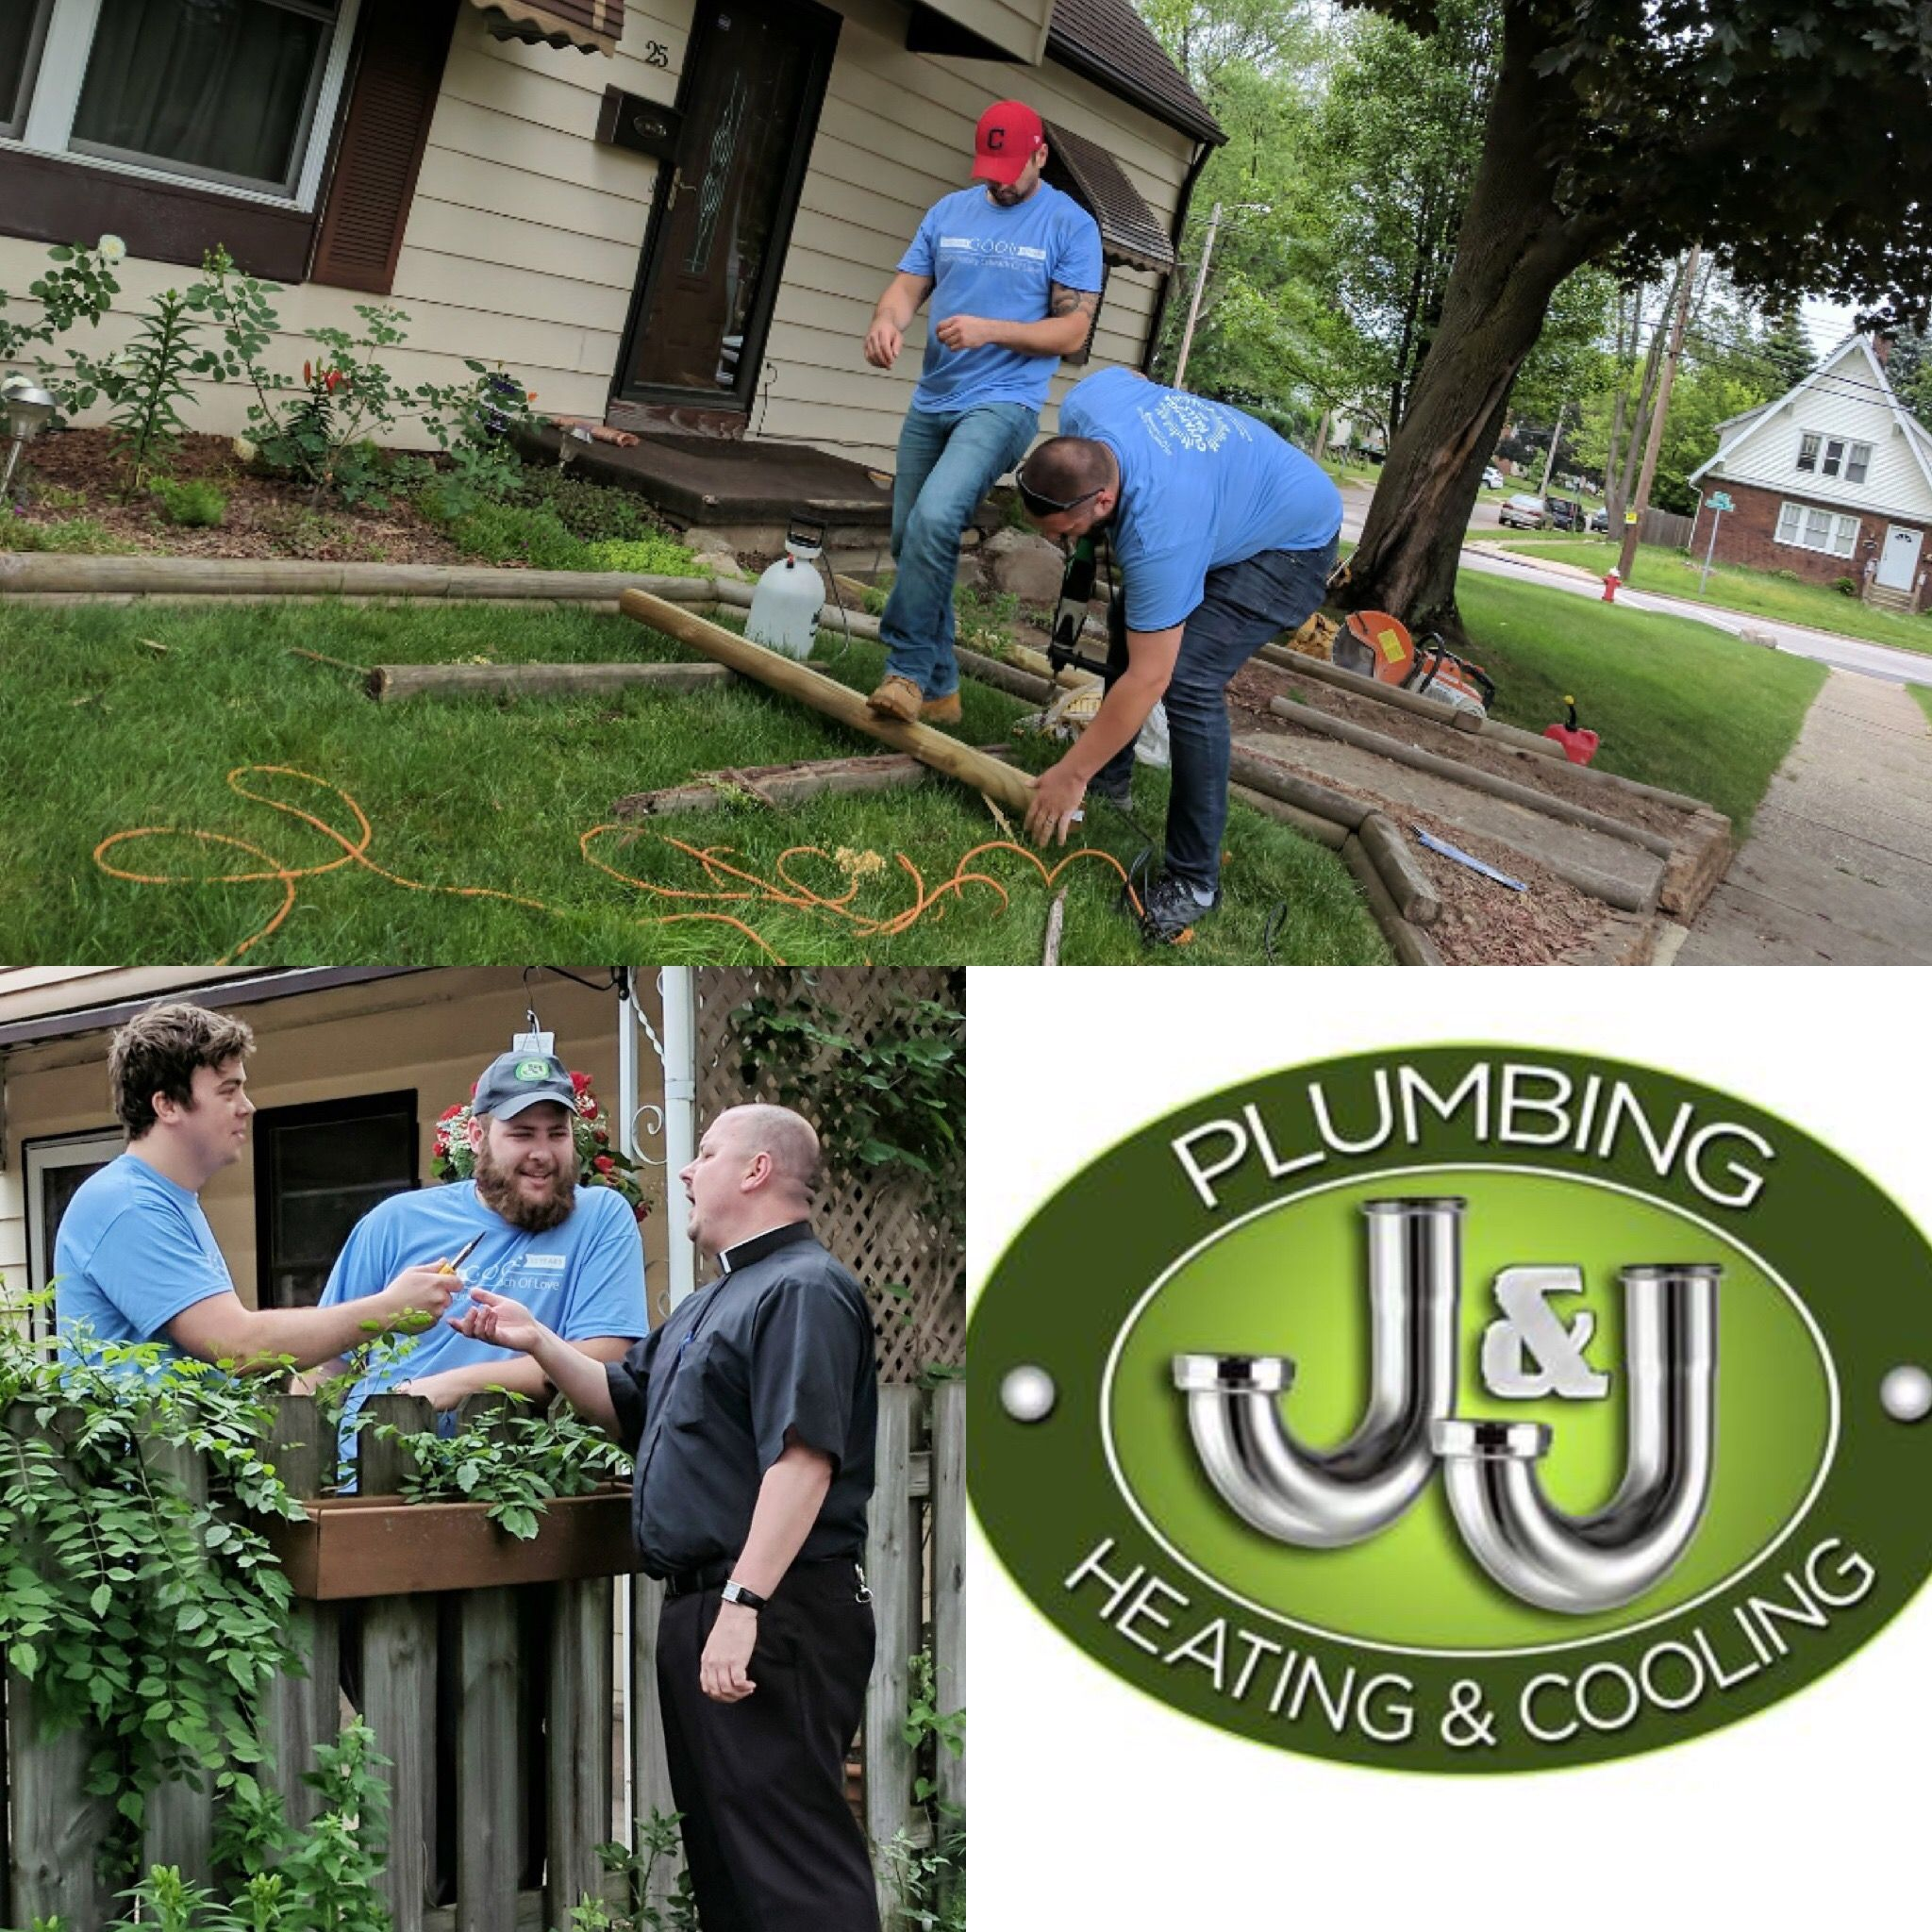 J J Plumbing Heating Cooling Volunteered In C O O L Day Our